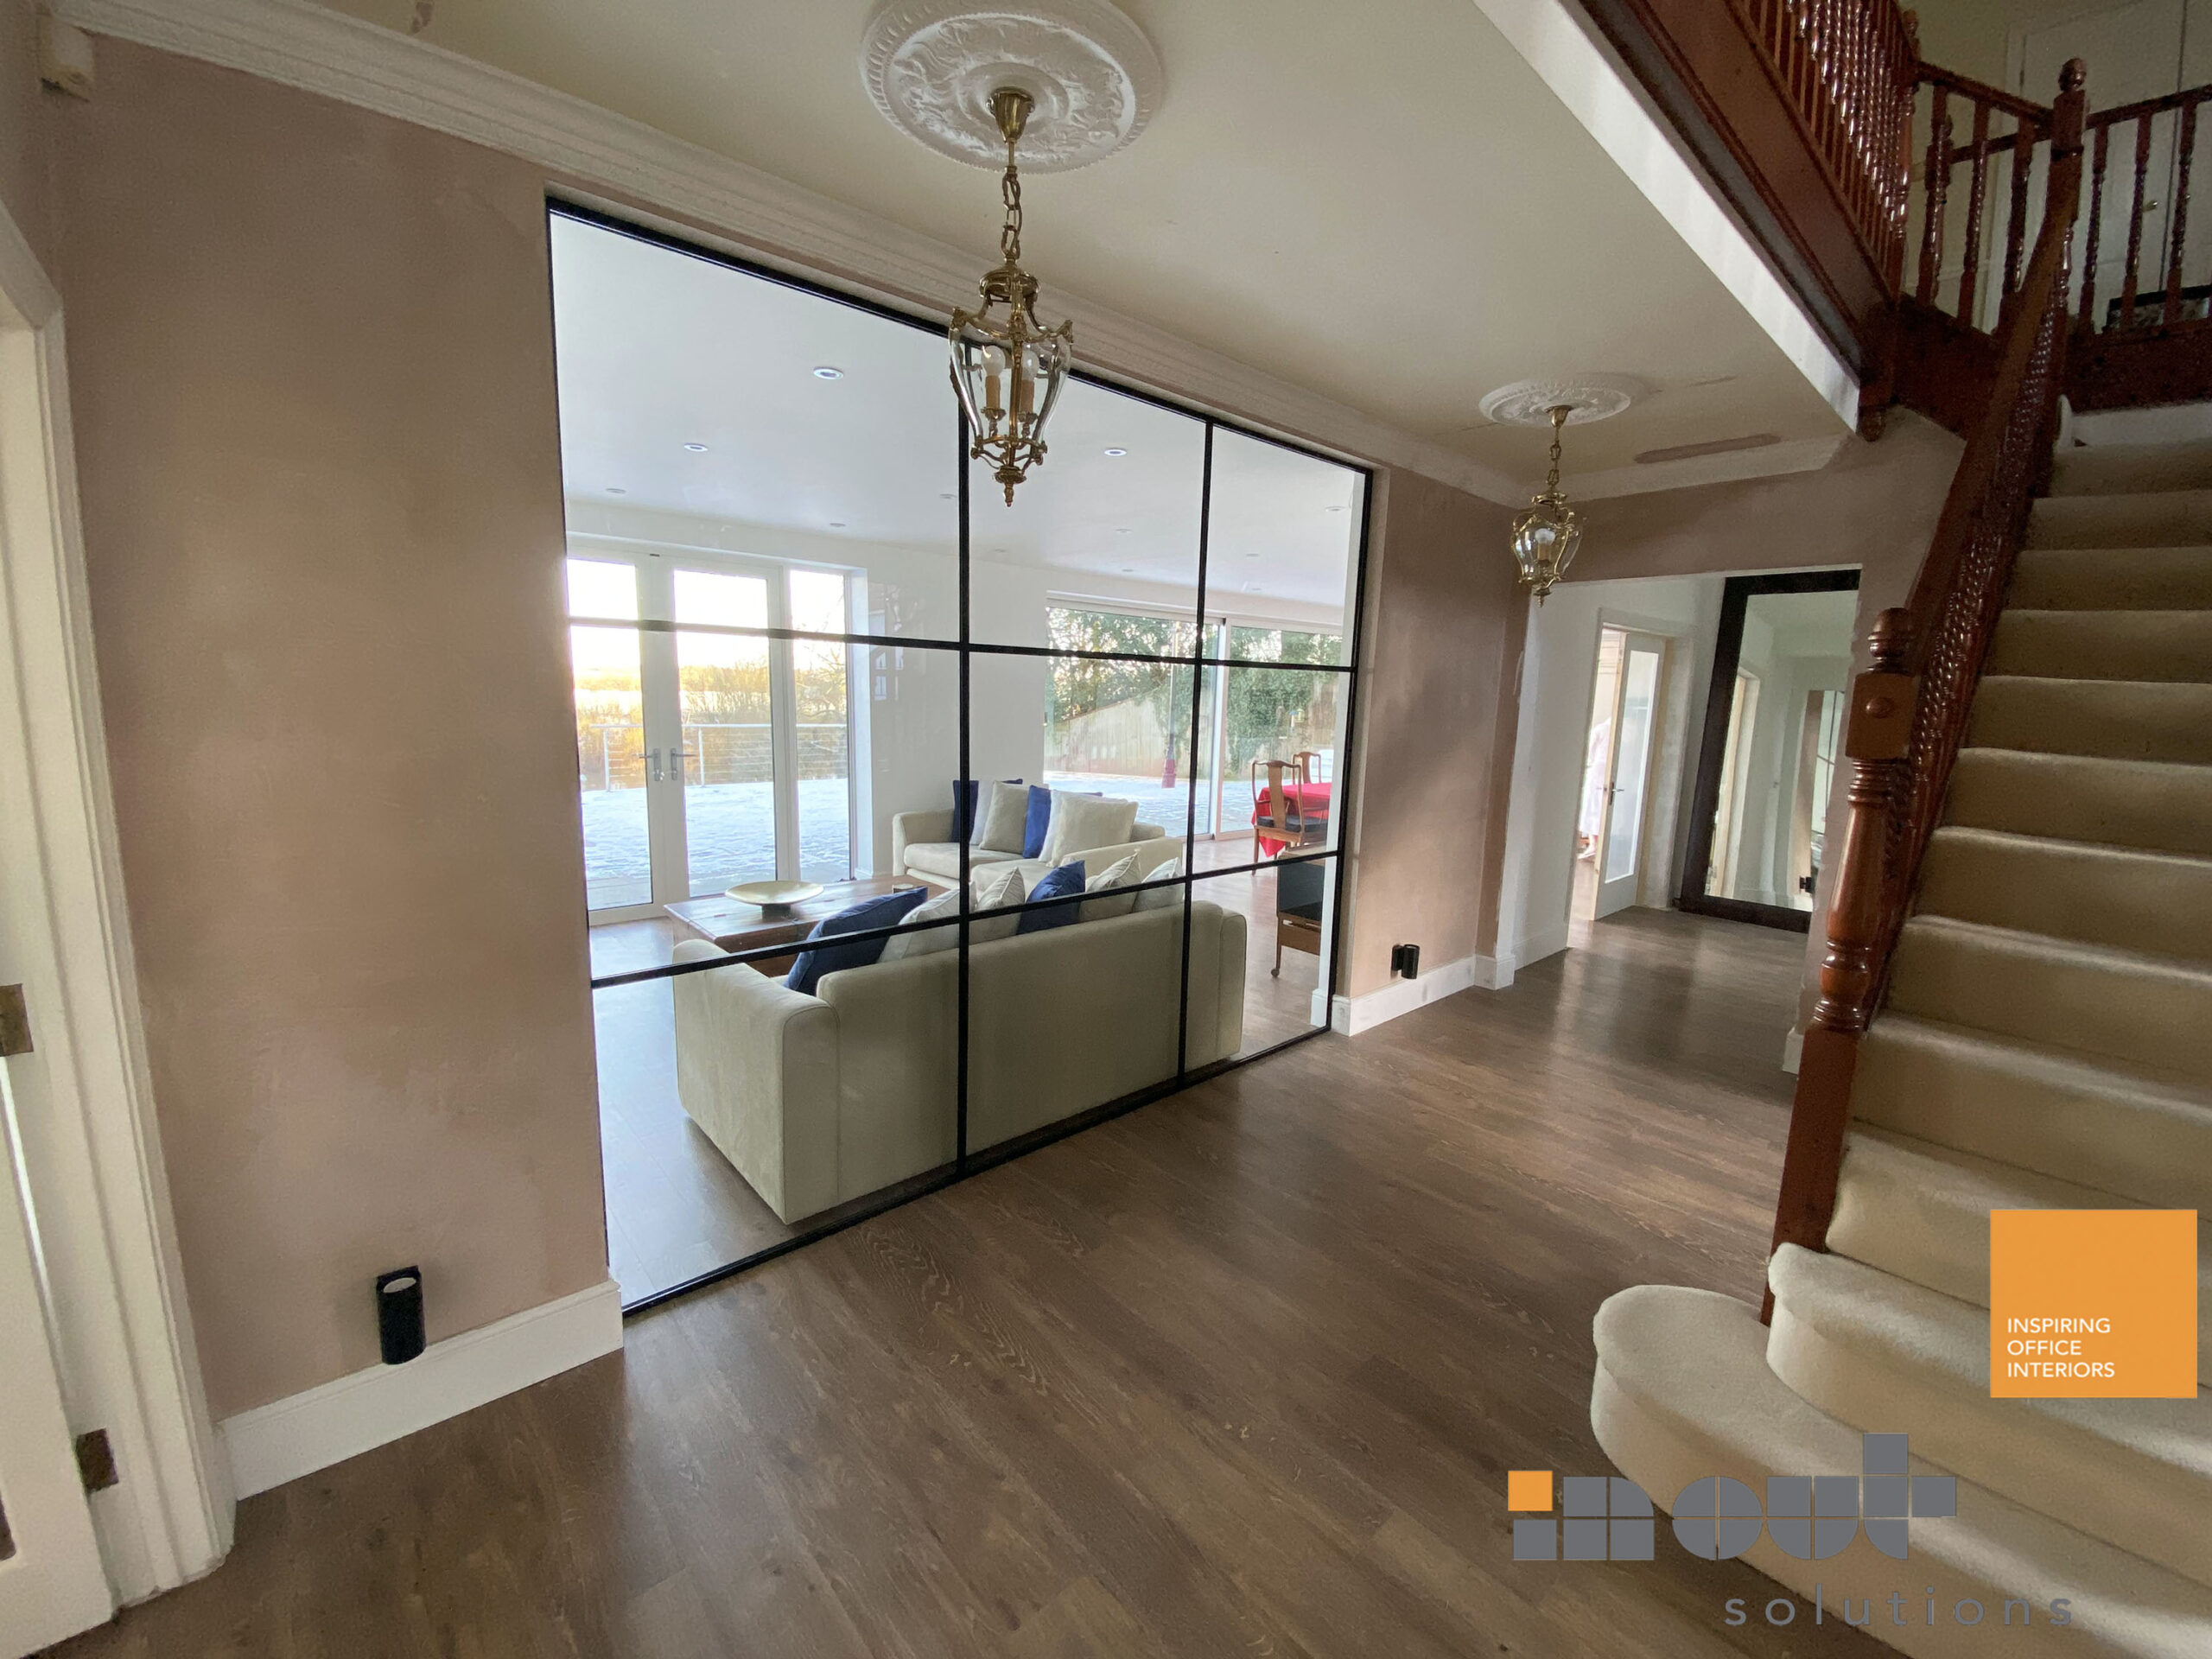 Glass Room Walls Dividers Glass Partitions for Home Living Room Dividers glass doors sliding glass doors UK Interior Doors Home Installers Glazed Office Partitions Costs Installed Prices internal glass partitioning